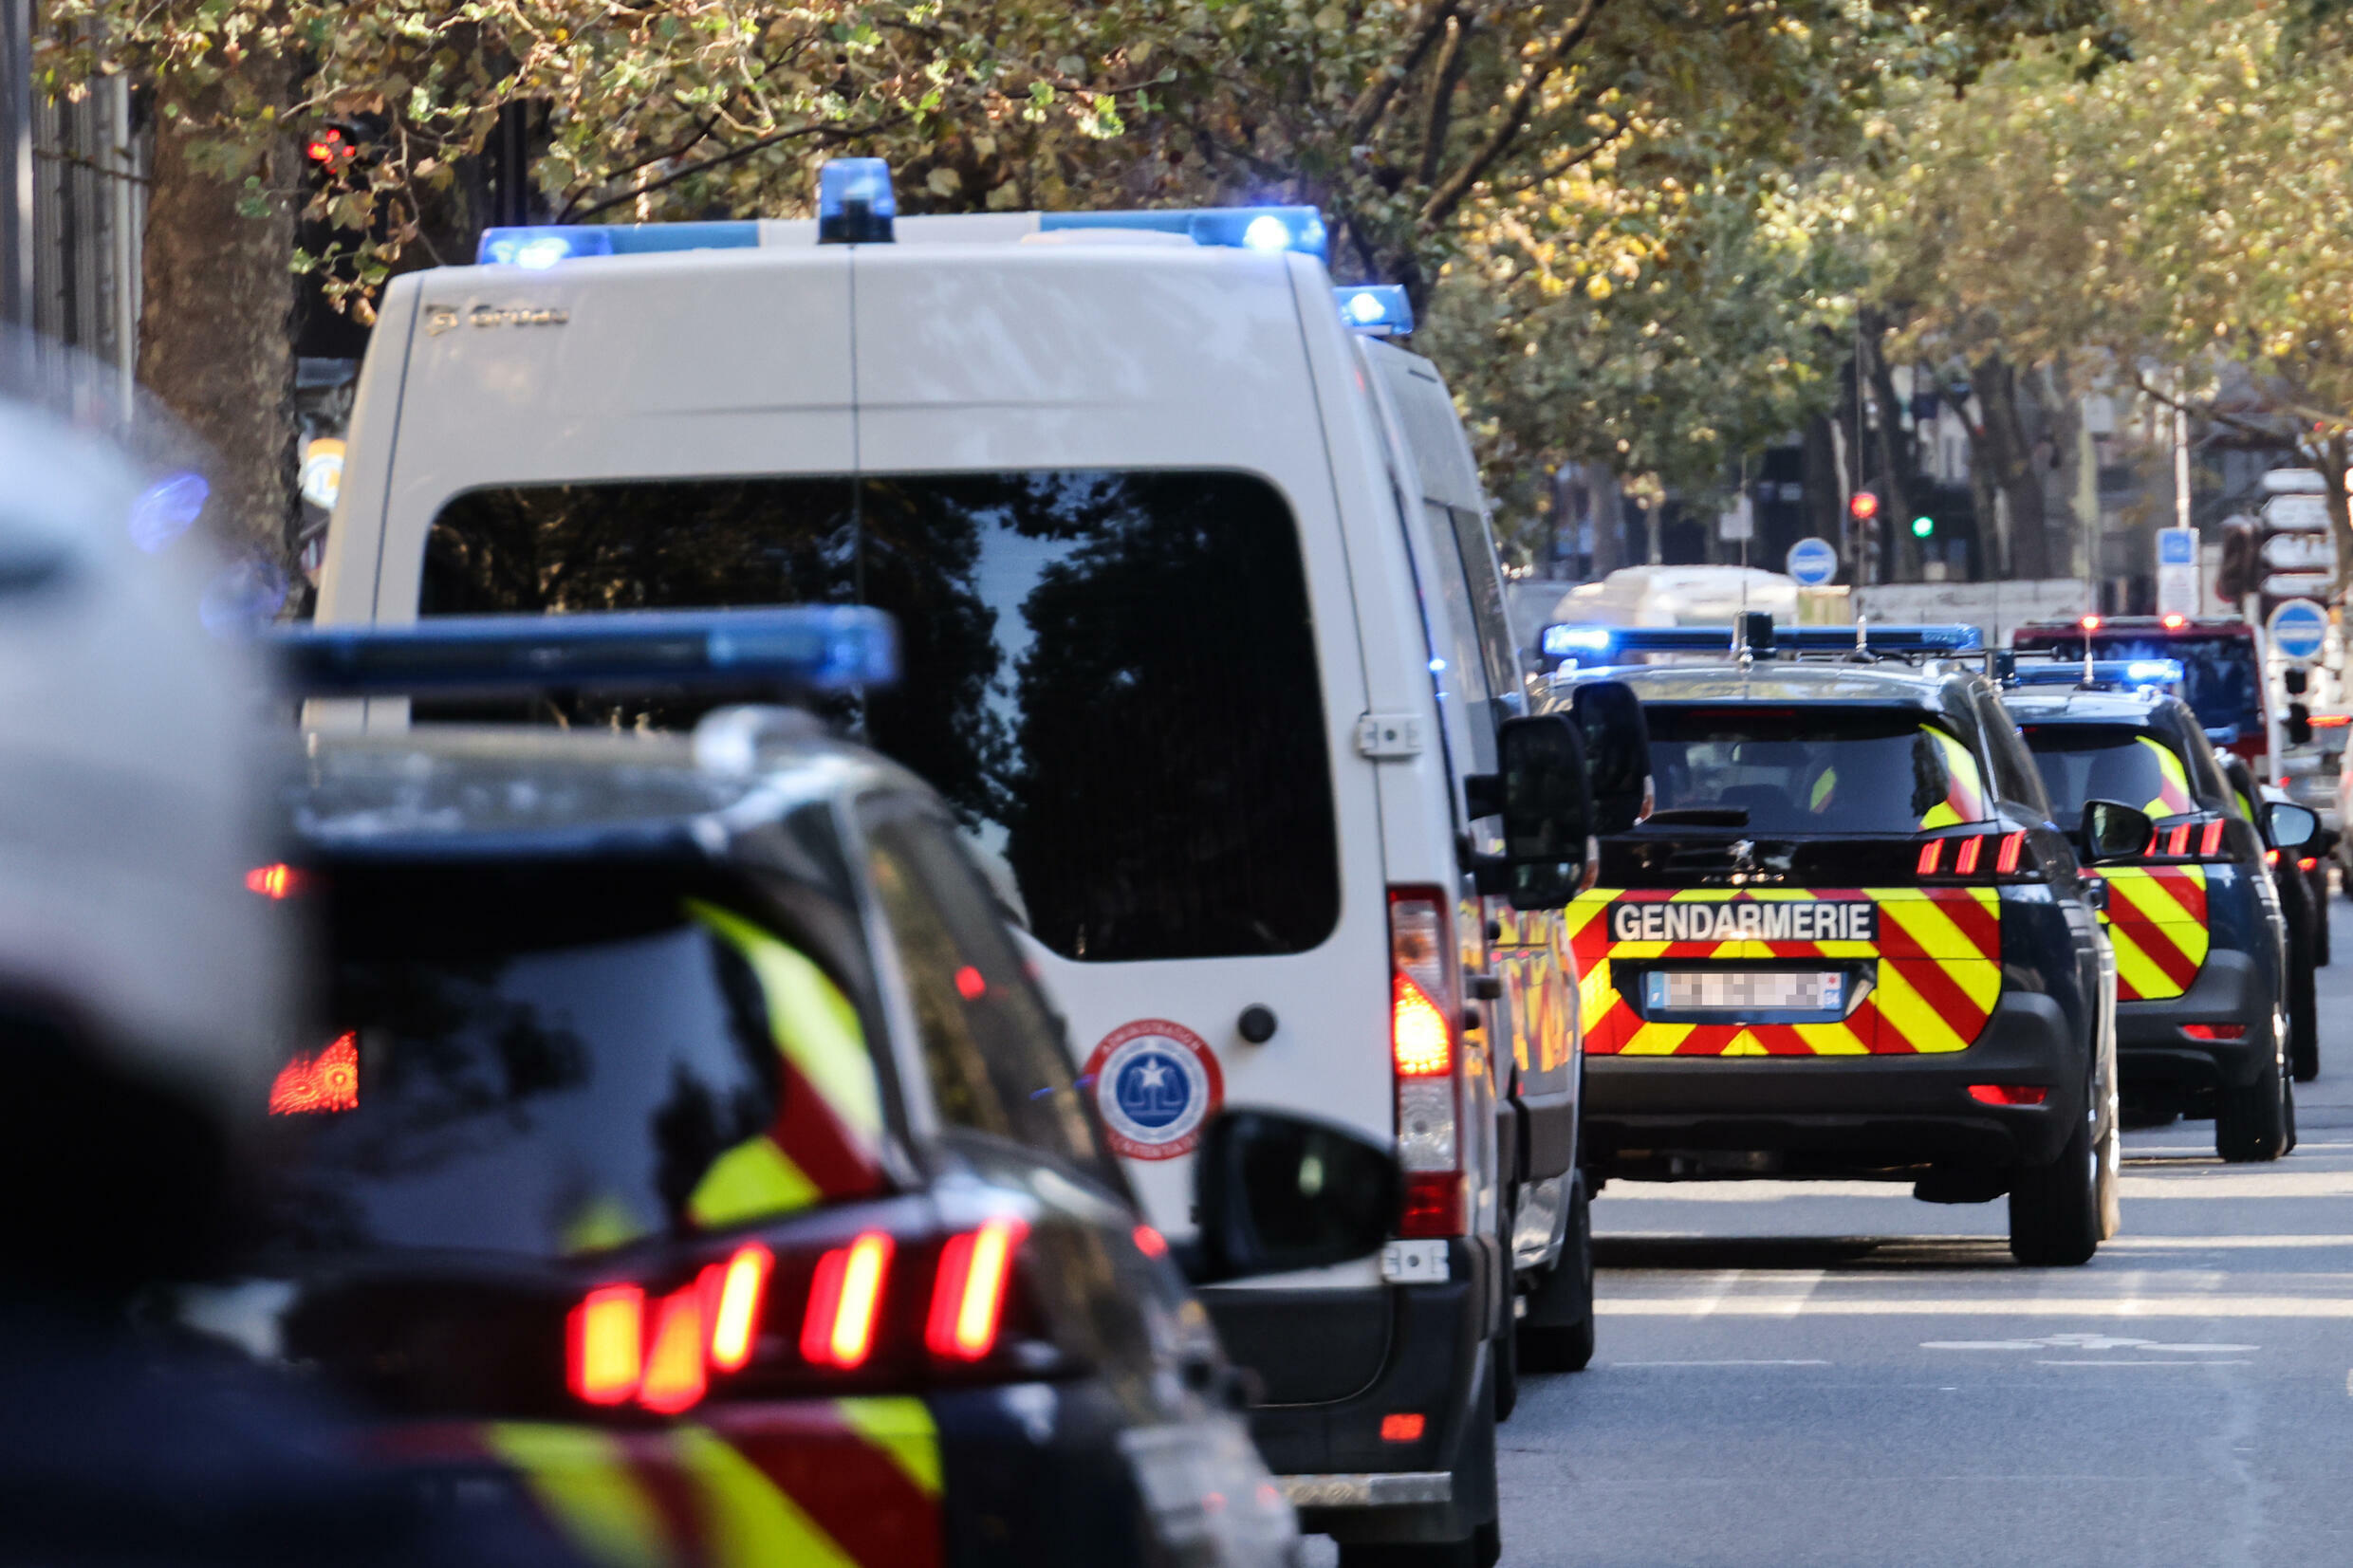 French police escort a convoy understood to be transporting main defendant Salah Abdeslam for his trial over the November 13, 2015 Paris attacks